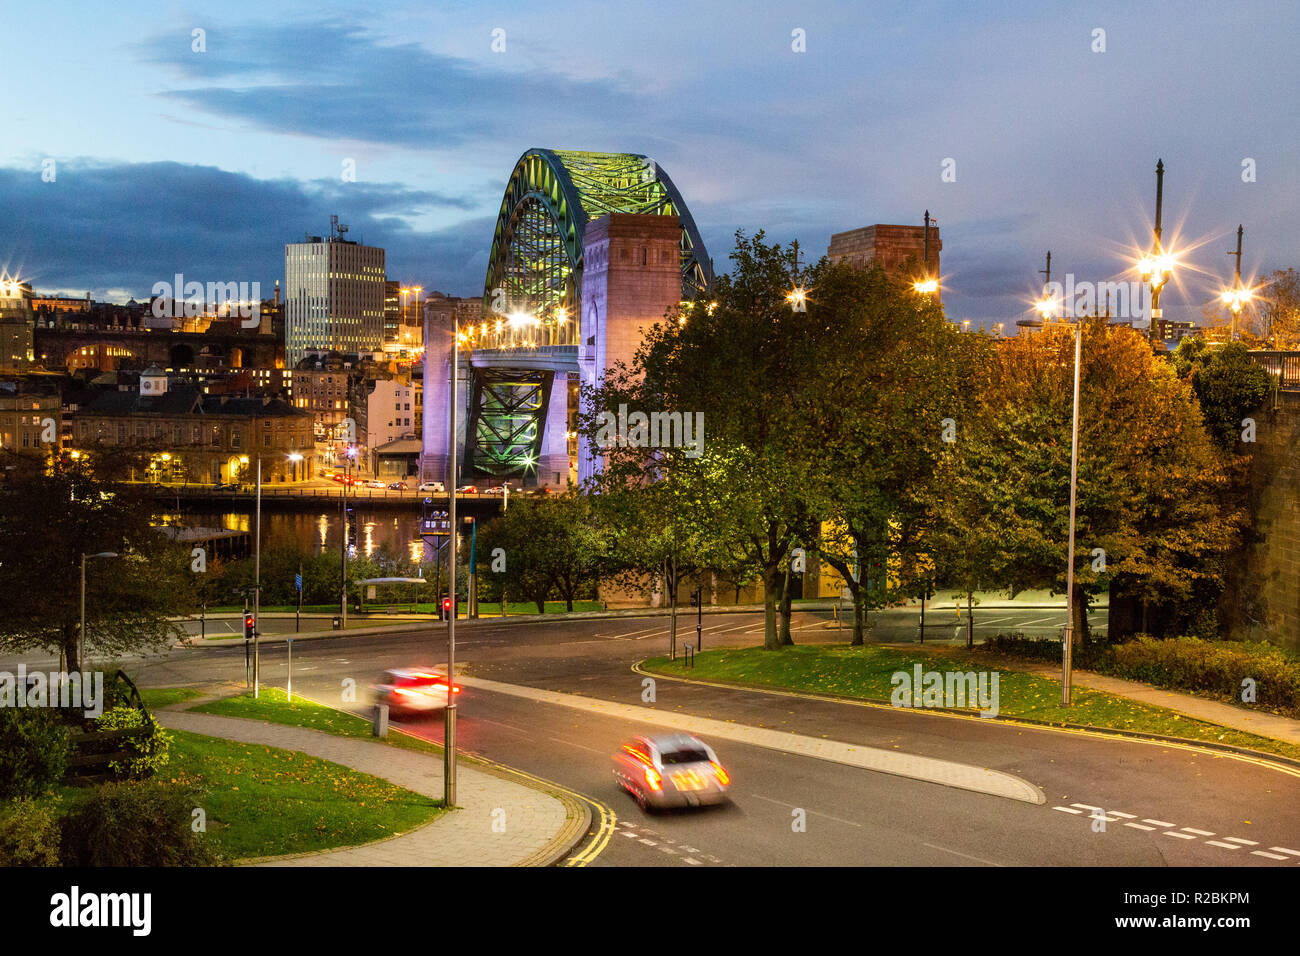 Newcastle upon Tyne/England: Tyne Bridge at night with car light trails Stock Photo